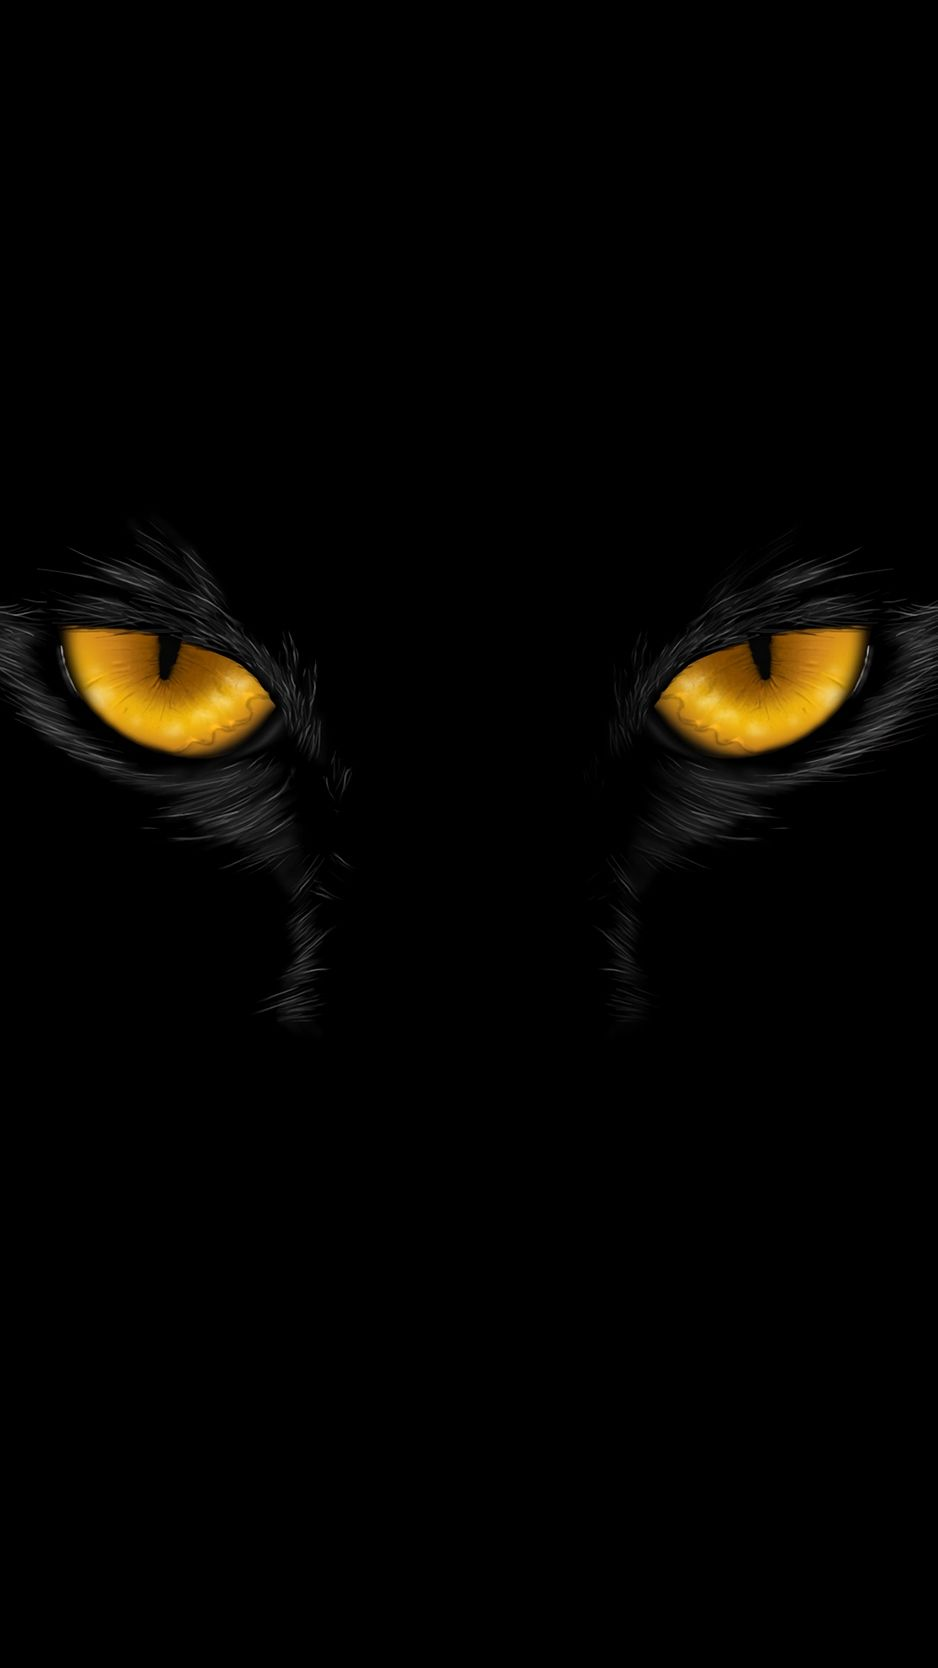 Pin By Wackywailesworld On Wall To Wall Eyes Wallpaper Big Cats Art Wolf Eyes